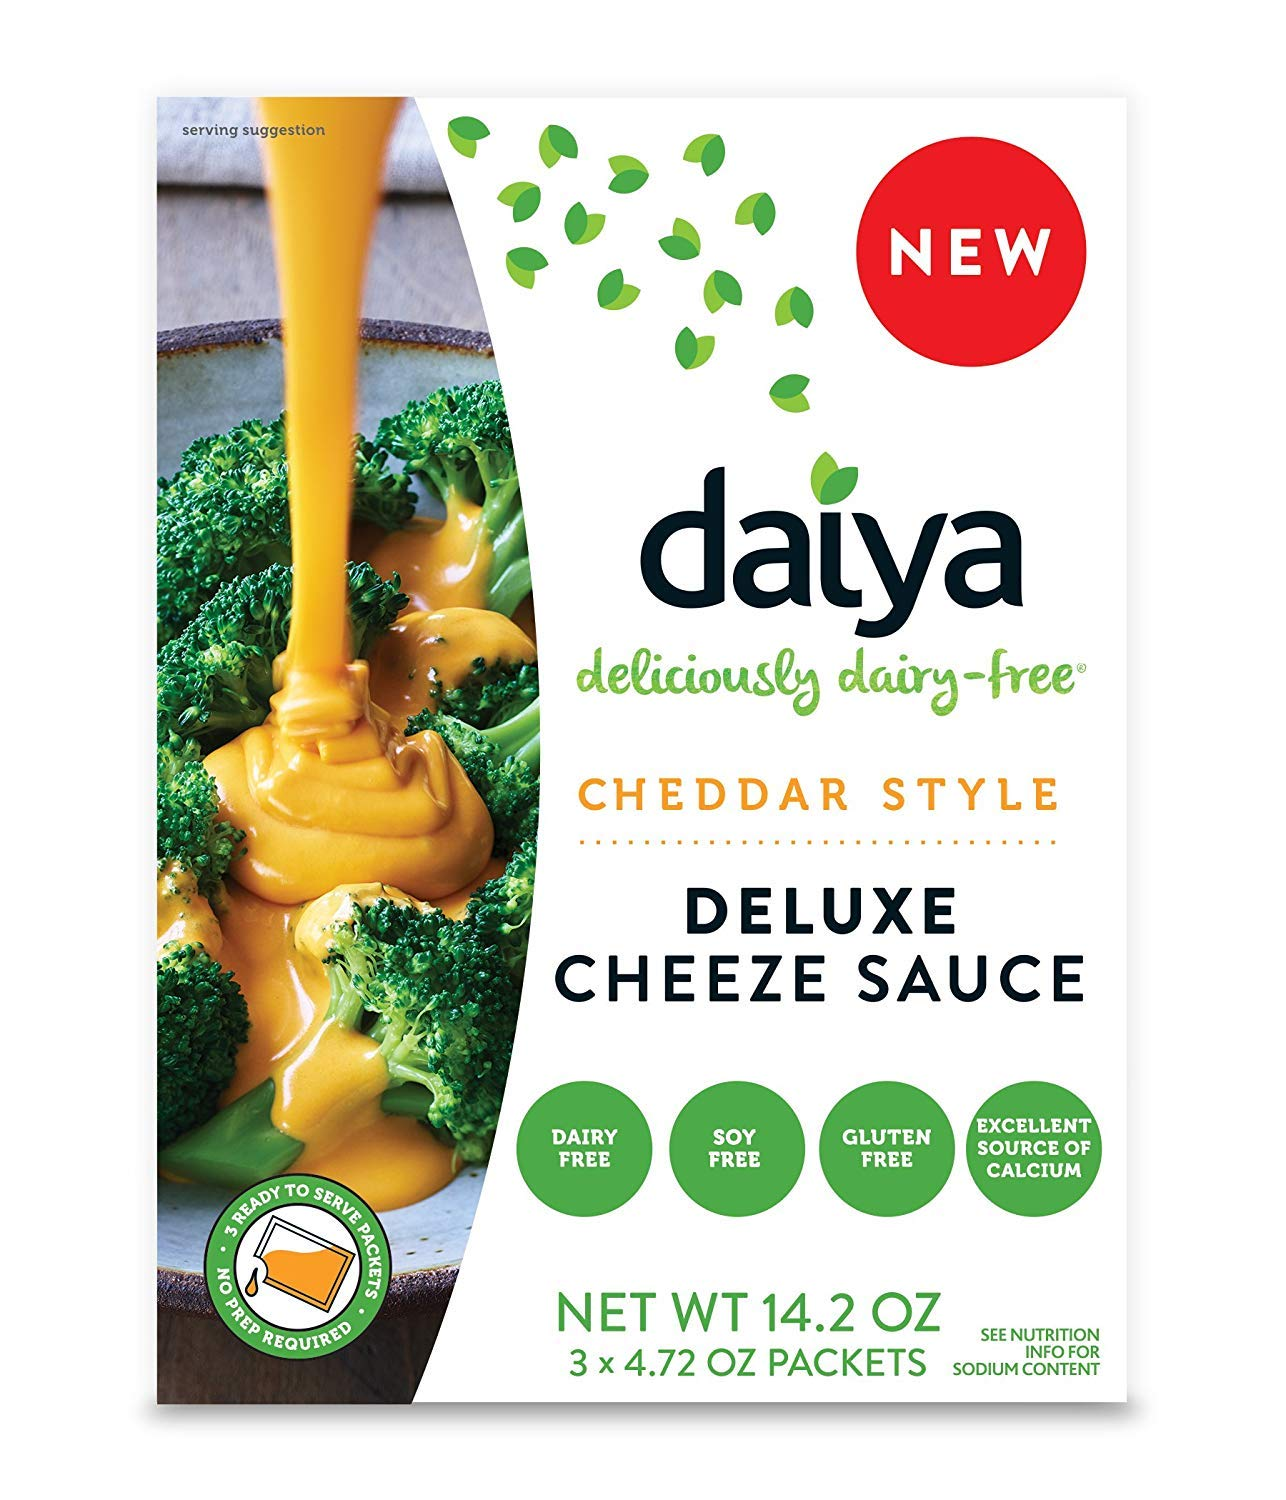 Daiya Cheddar Style Cheeze Sauce :: Plant-Based Macaroni & Cheese Sauce :: Vegan, Dairy Free, Gluten Free, Soy Free, Rich Cheesy Flavor (2 Pack)